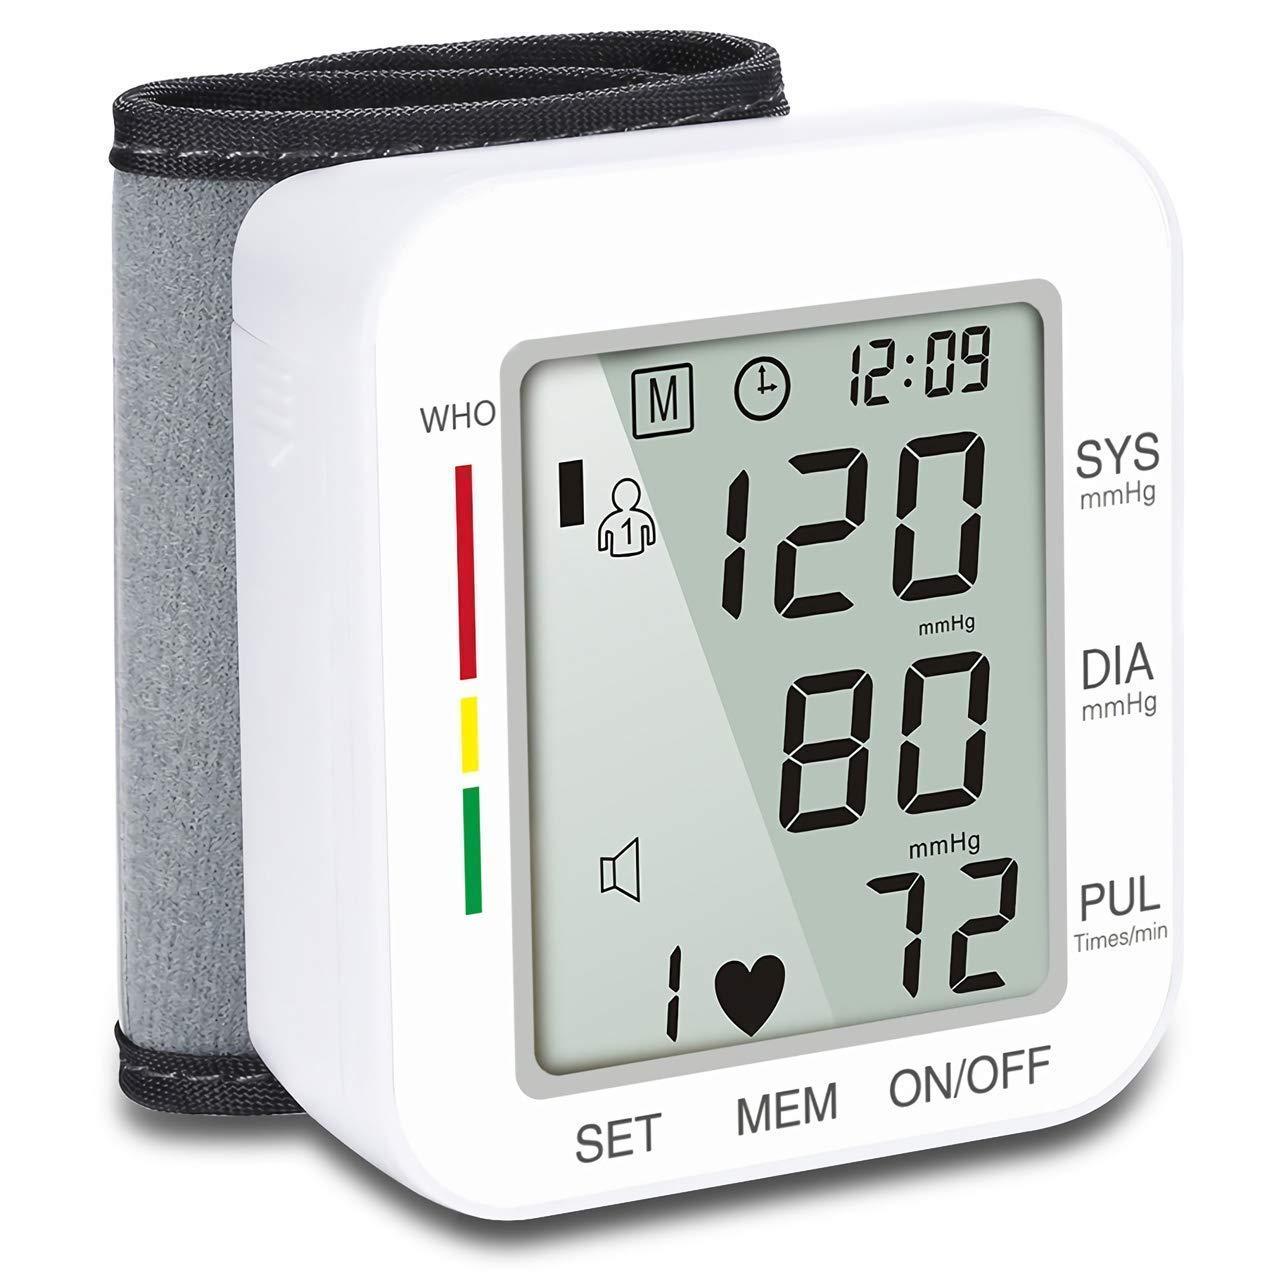 Amazon.com: Hong S Wrist Automatic Blood Pressure Monitor Voice Broadcast Clinical High Blood Pressure Monitor with Large LCD Screen Accurate Adjustable ...